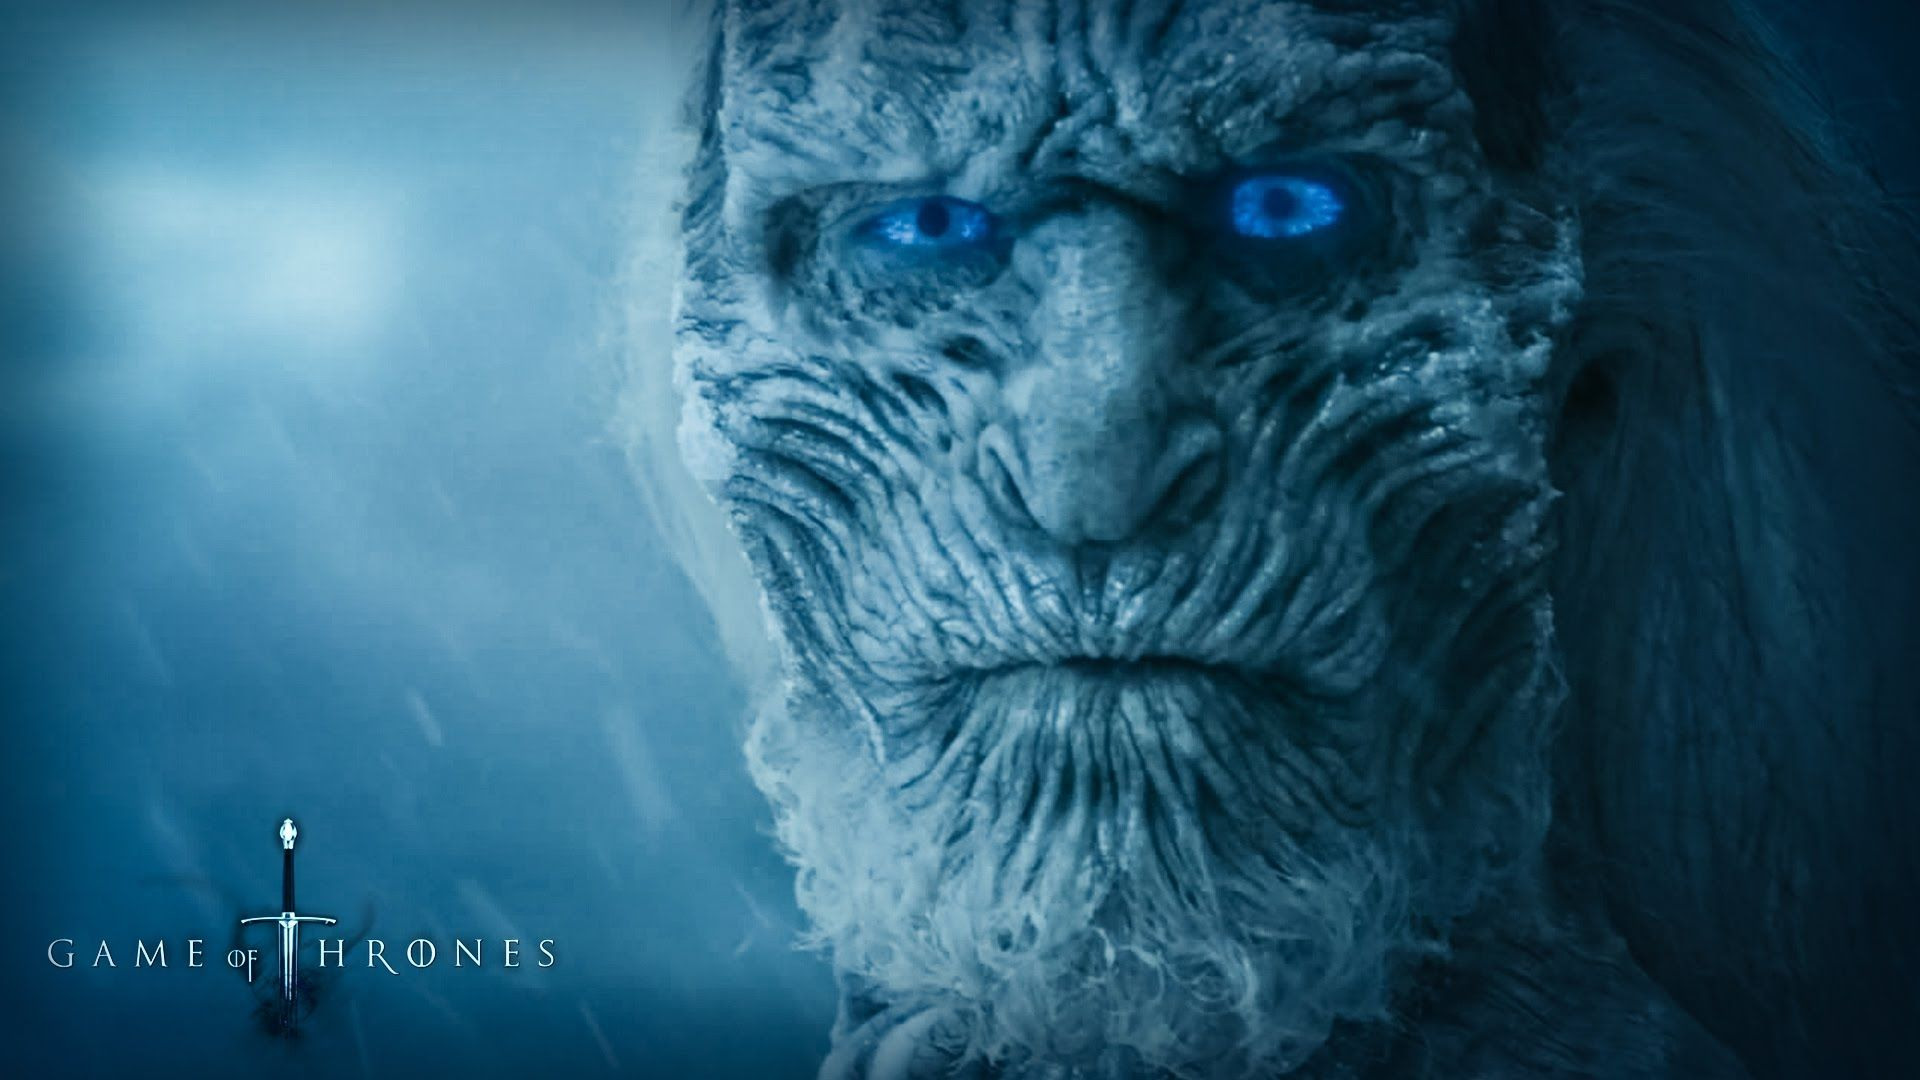 white walker wallpaper - game of thrones wallpaper (1920x1080